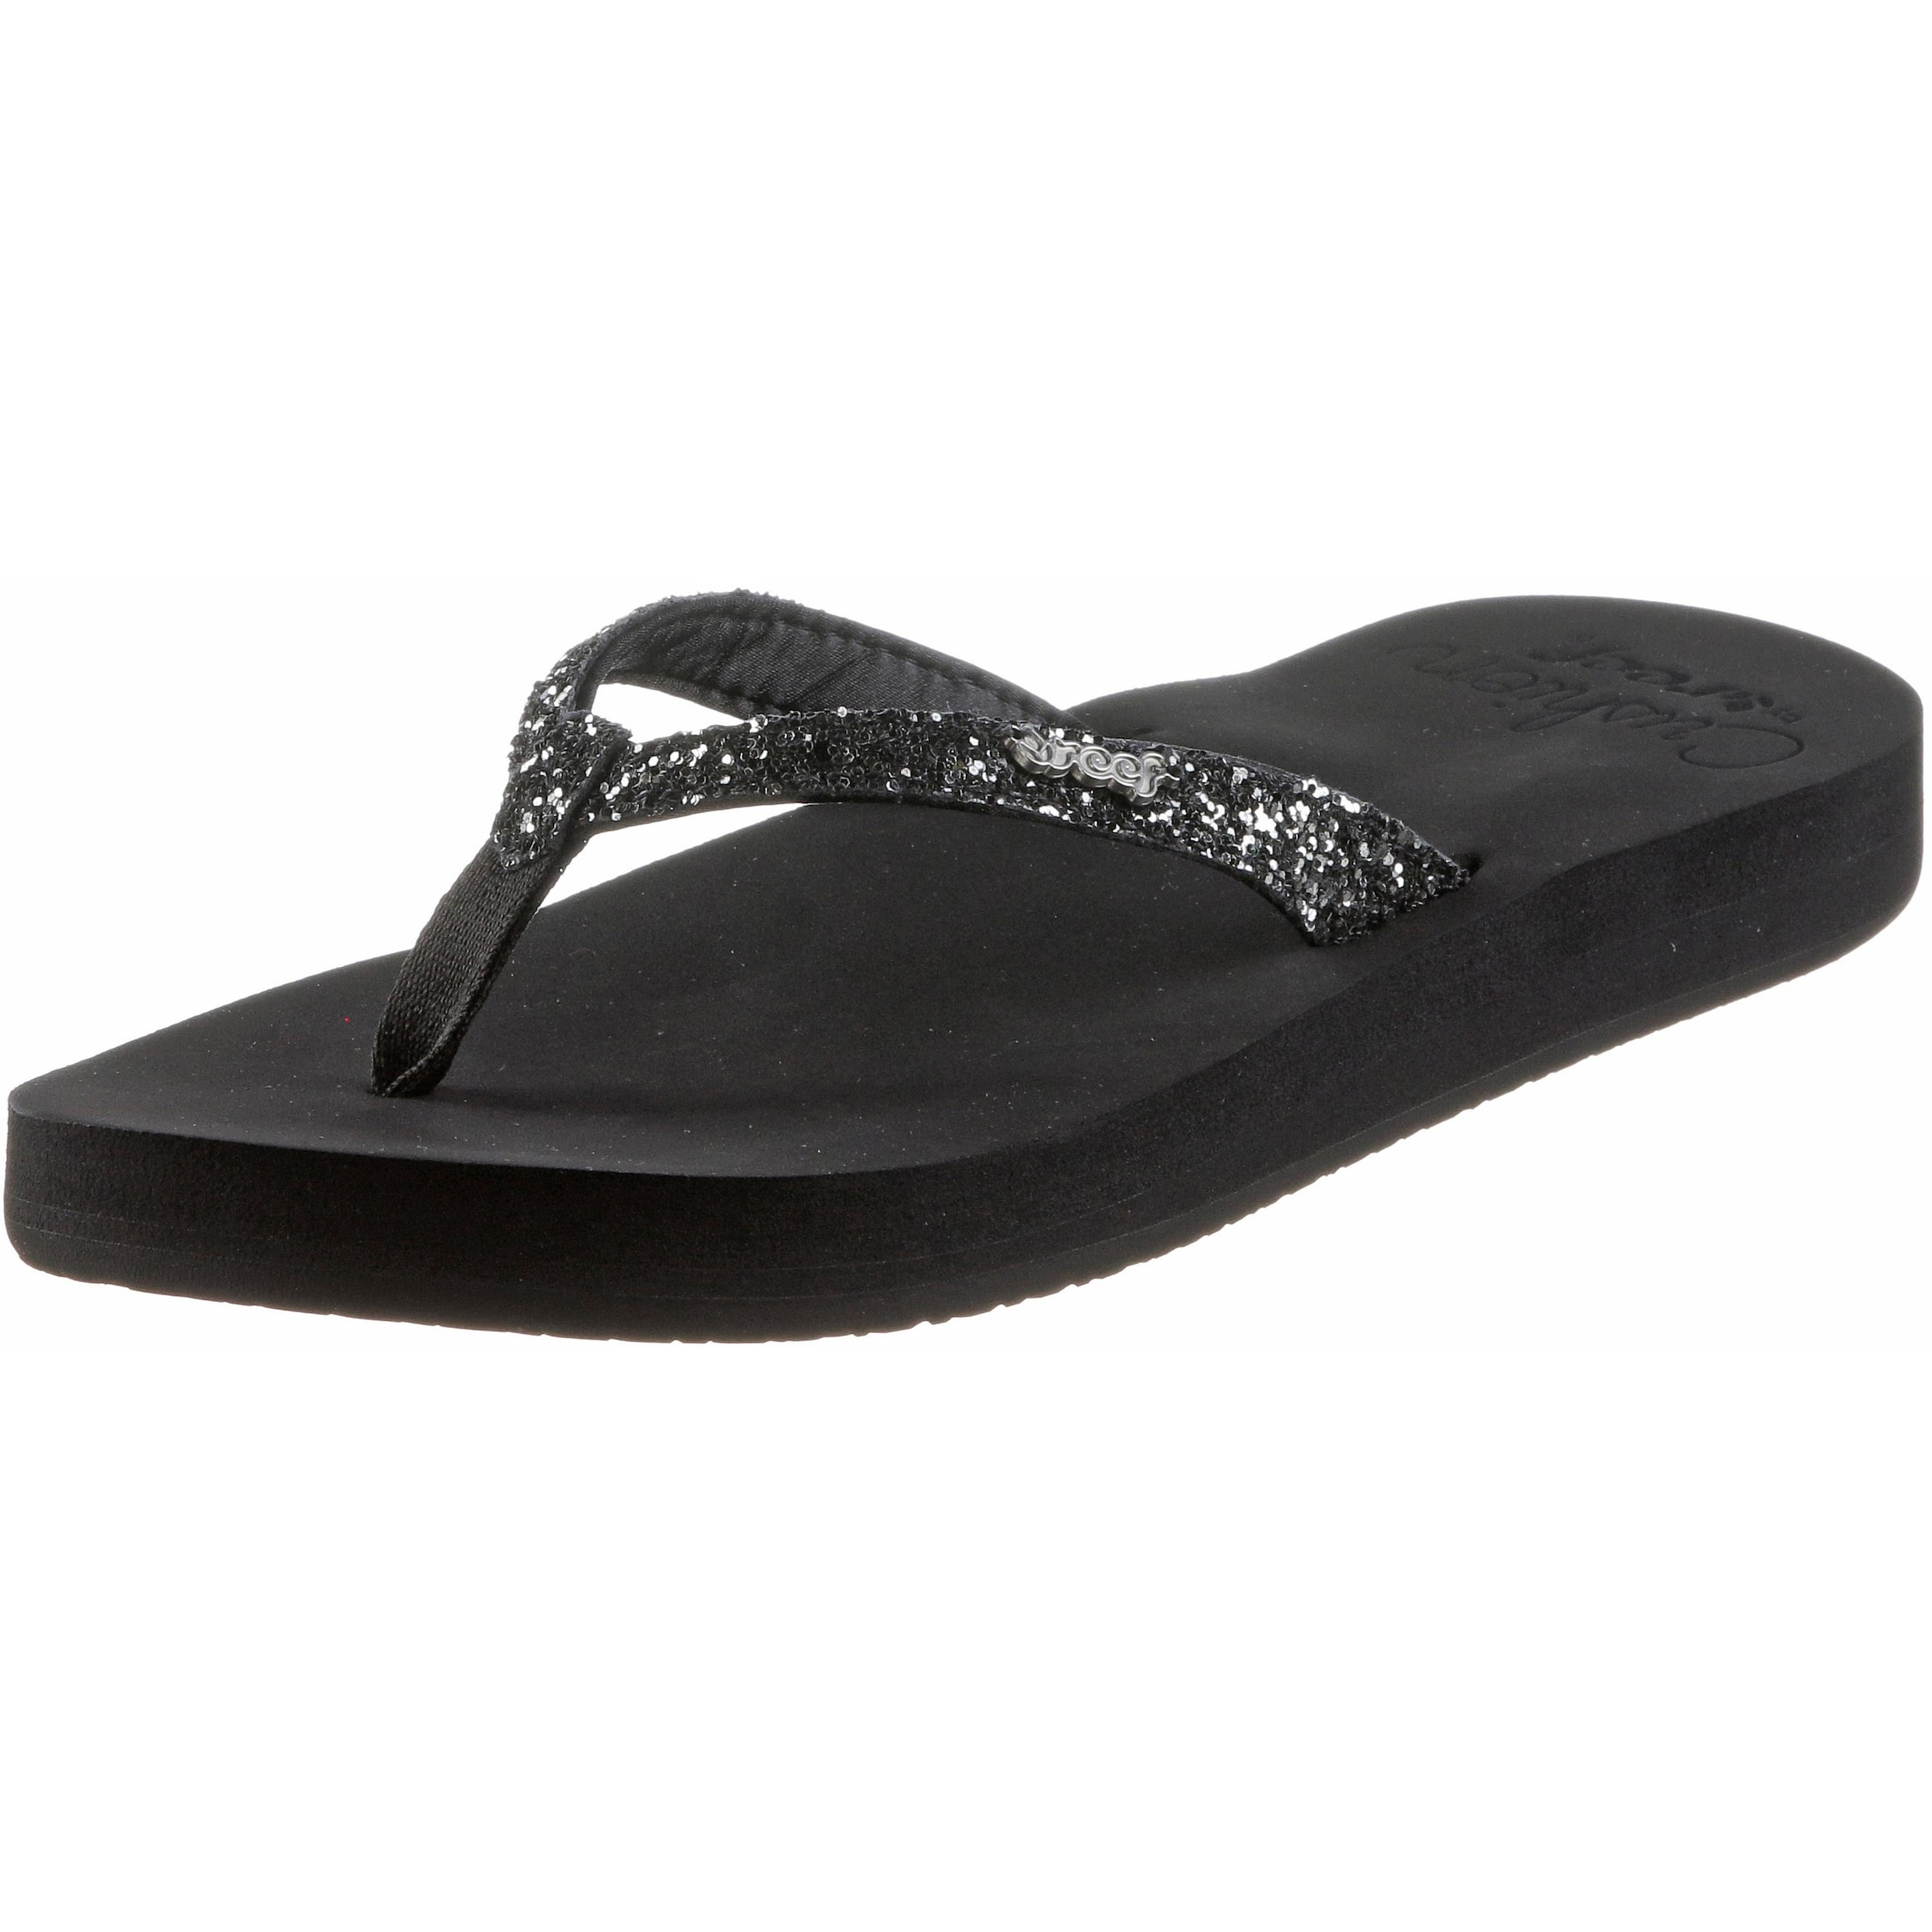 REEF  STAR CUSHION  Zehensandalen